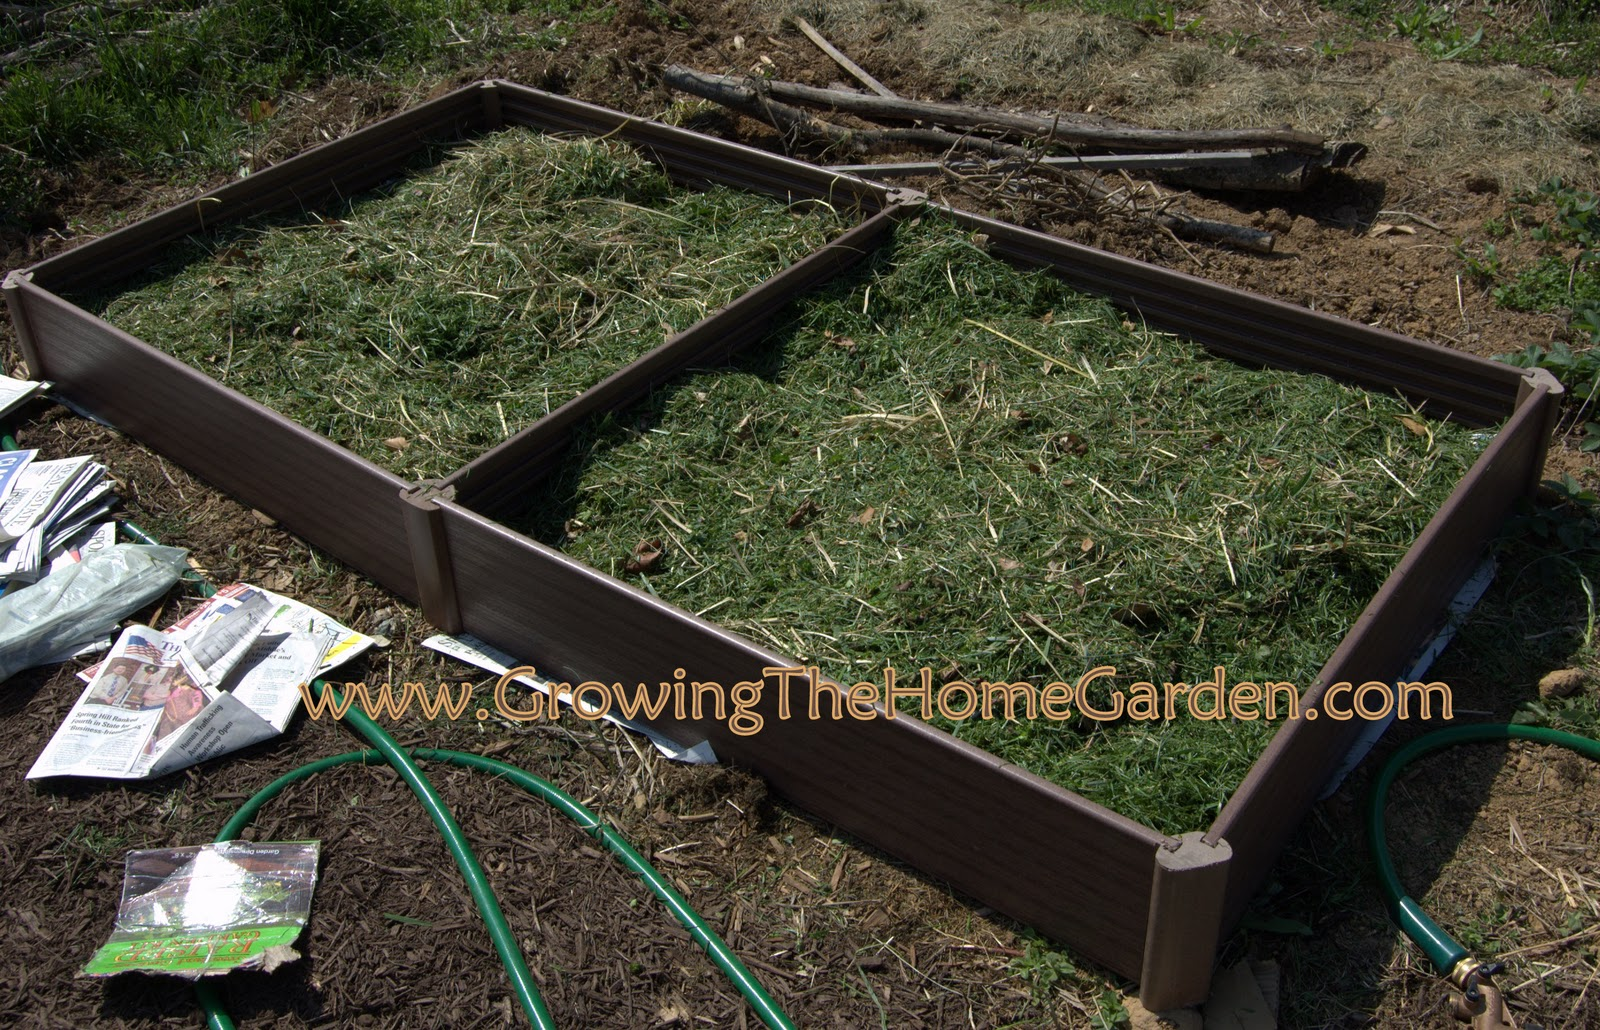 Greenland gardener raised bed garden kit - I Really Like The Seed Planting Concept That Greenland Gardener Kit Has But I Ll Save That Post For Later When The Weather Is Safe For Planting